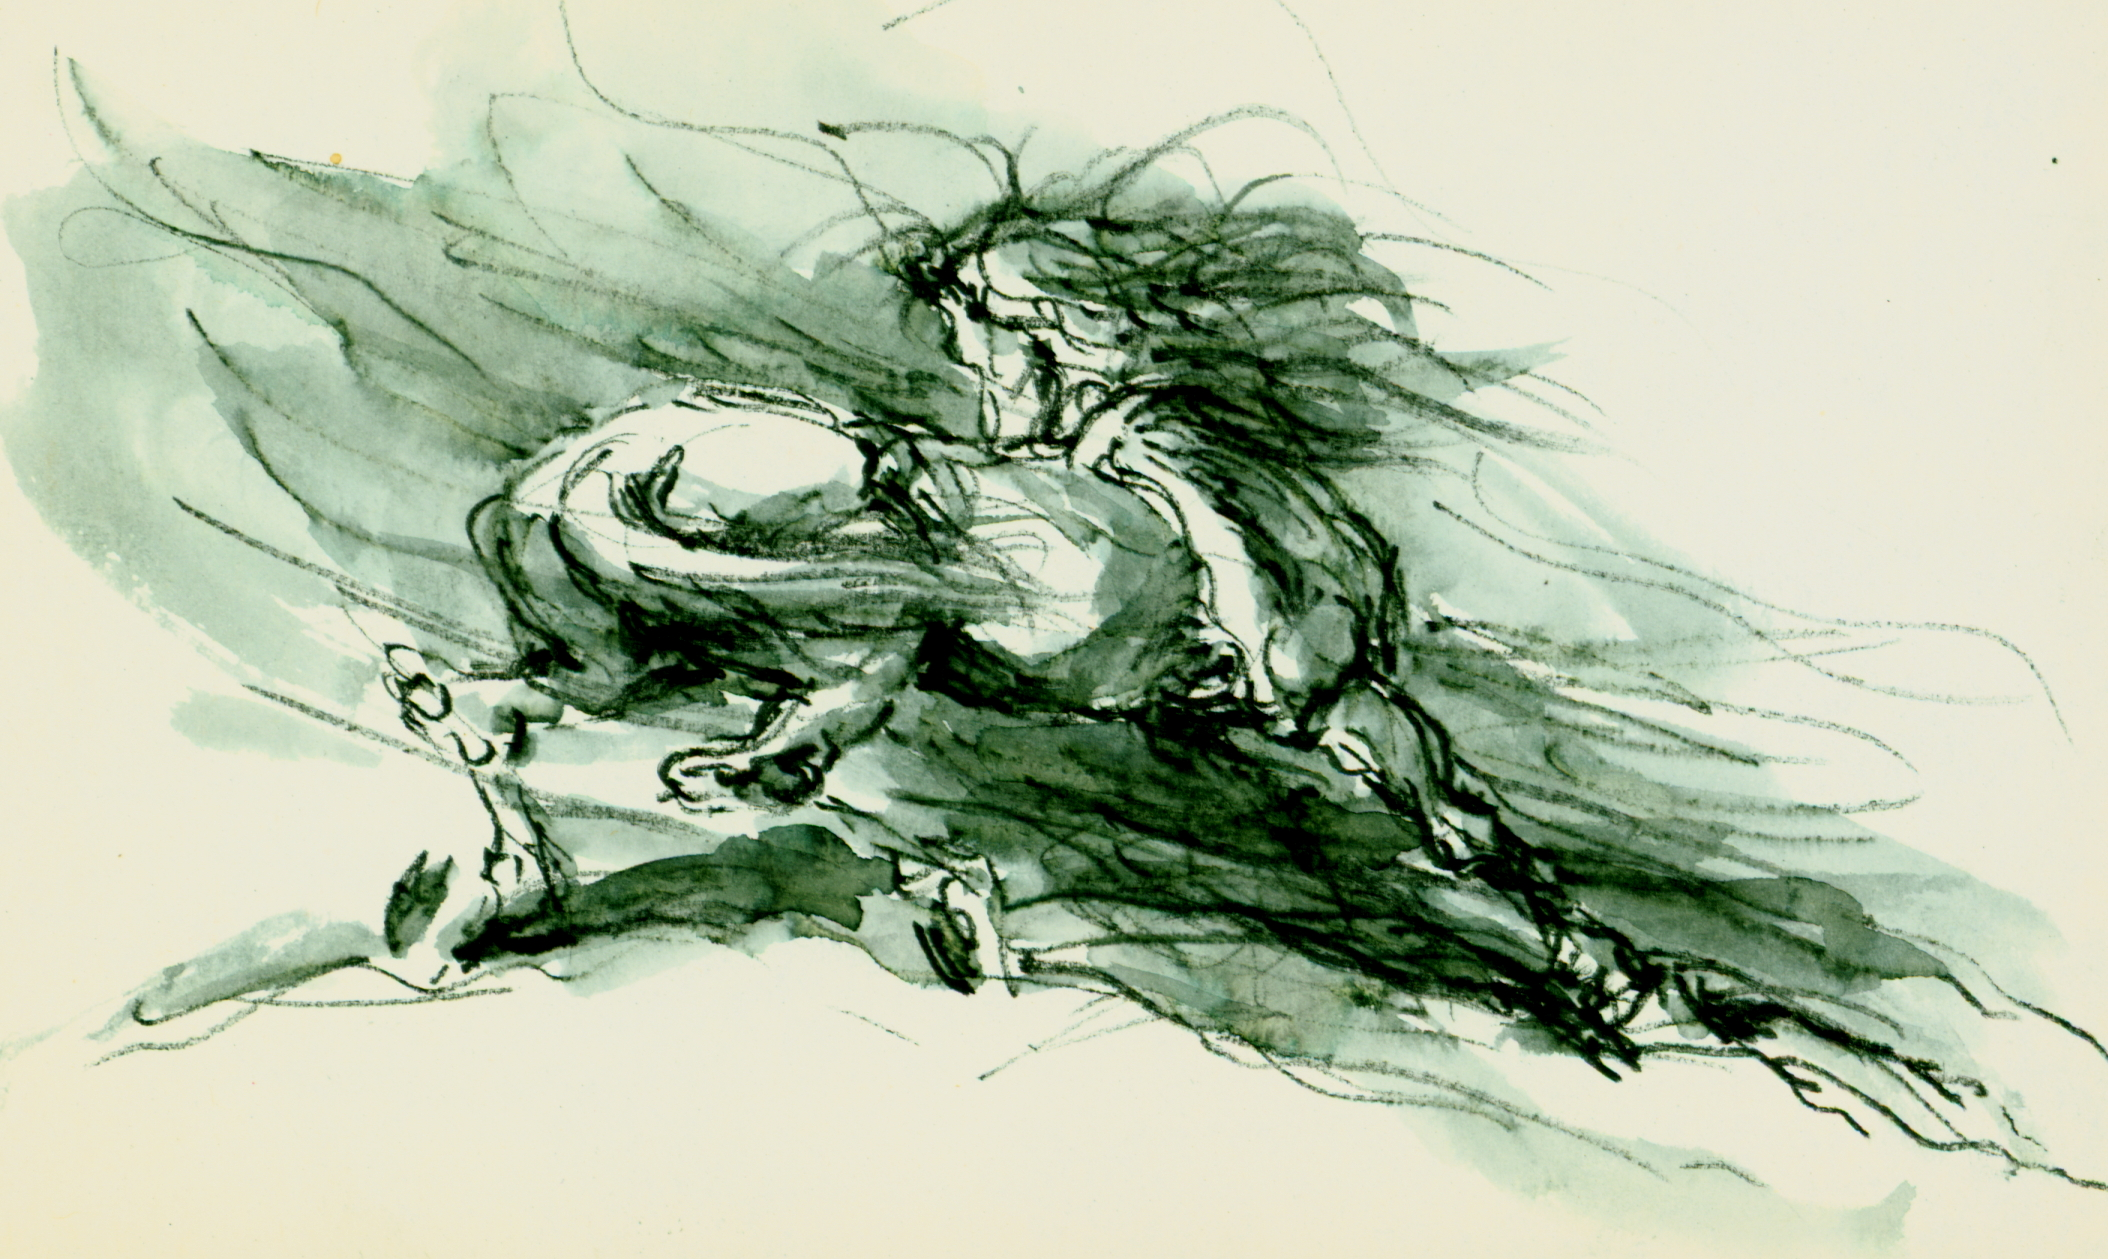 """<font size='3' font color='gray'><p id=""""myP"""" style=""""text-transform:capitalize"""">Horse in a Storm (Pen & ink, wash, 4.50 x 7)  c. 1980's</p>"""